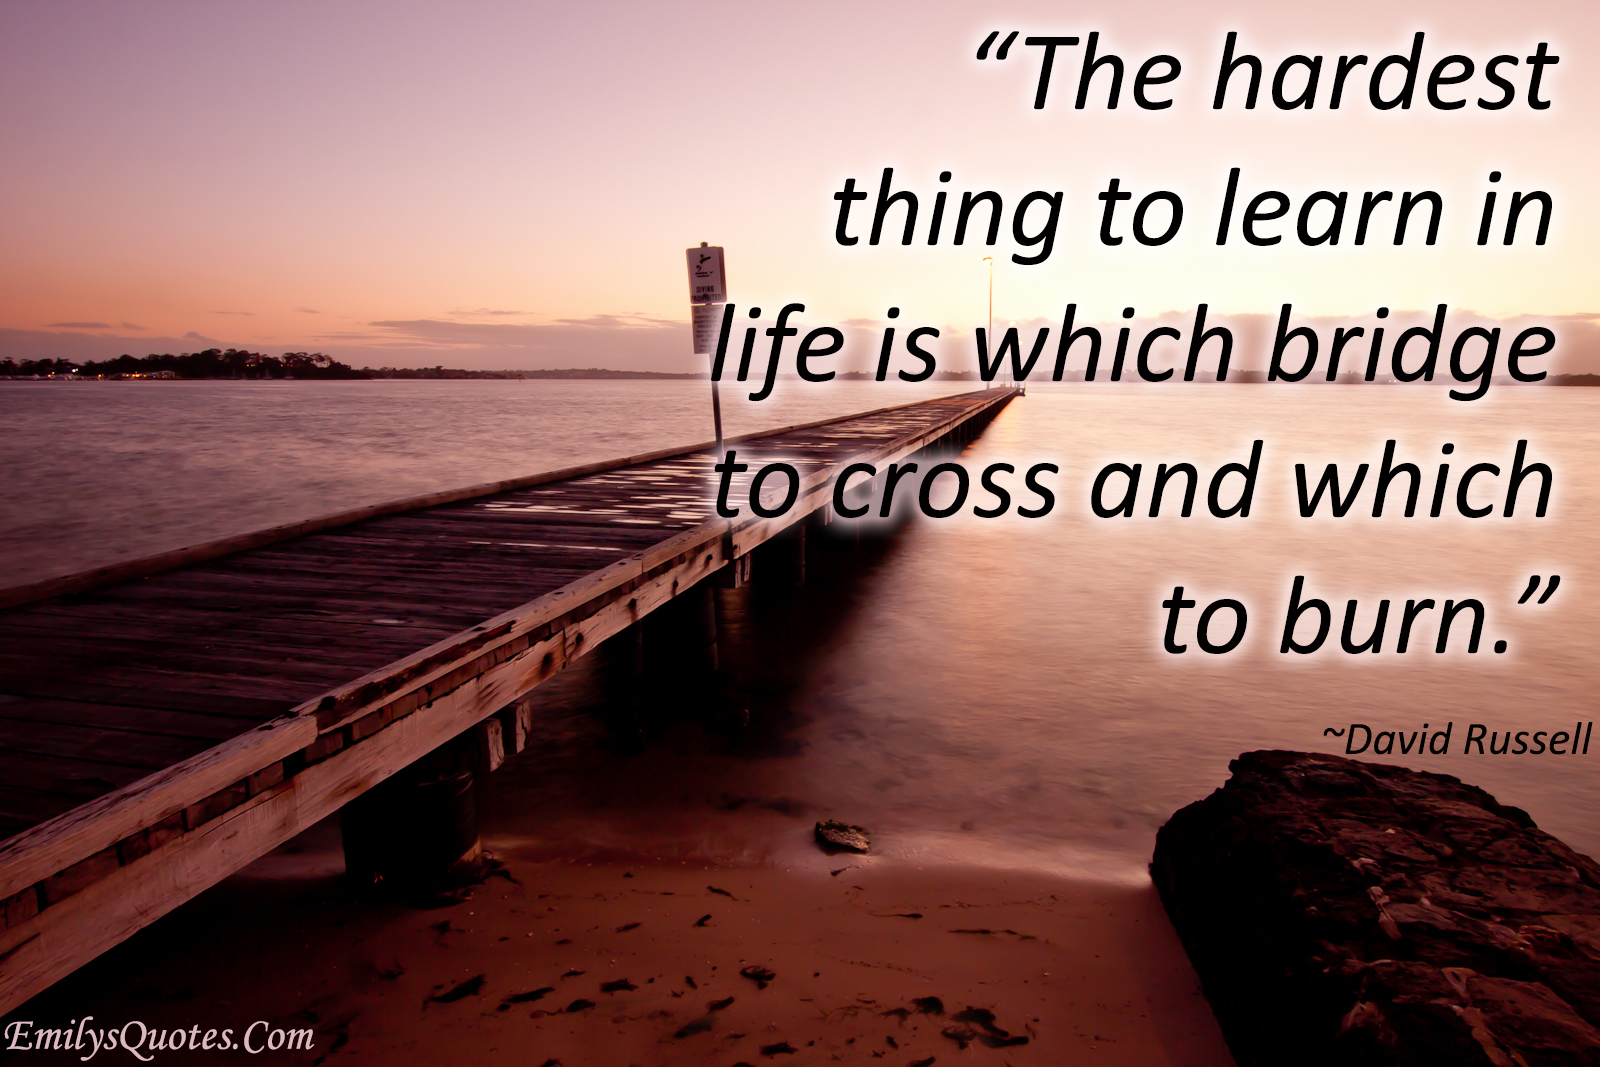 Life Quotes Com Inspiration The Hardest Thing To Learn In Life Is Which Bridge To Cross And